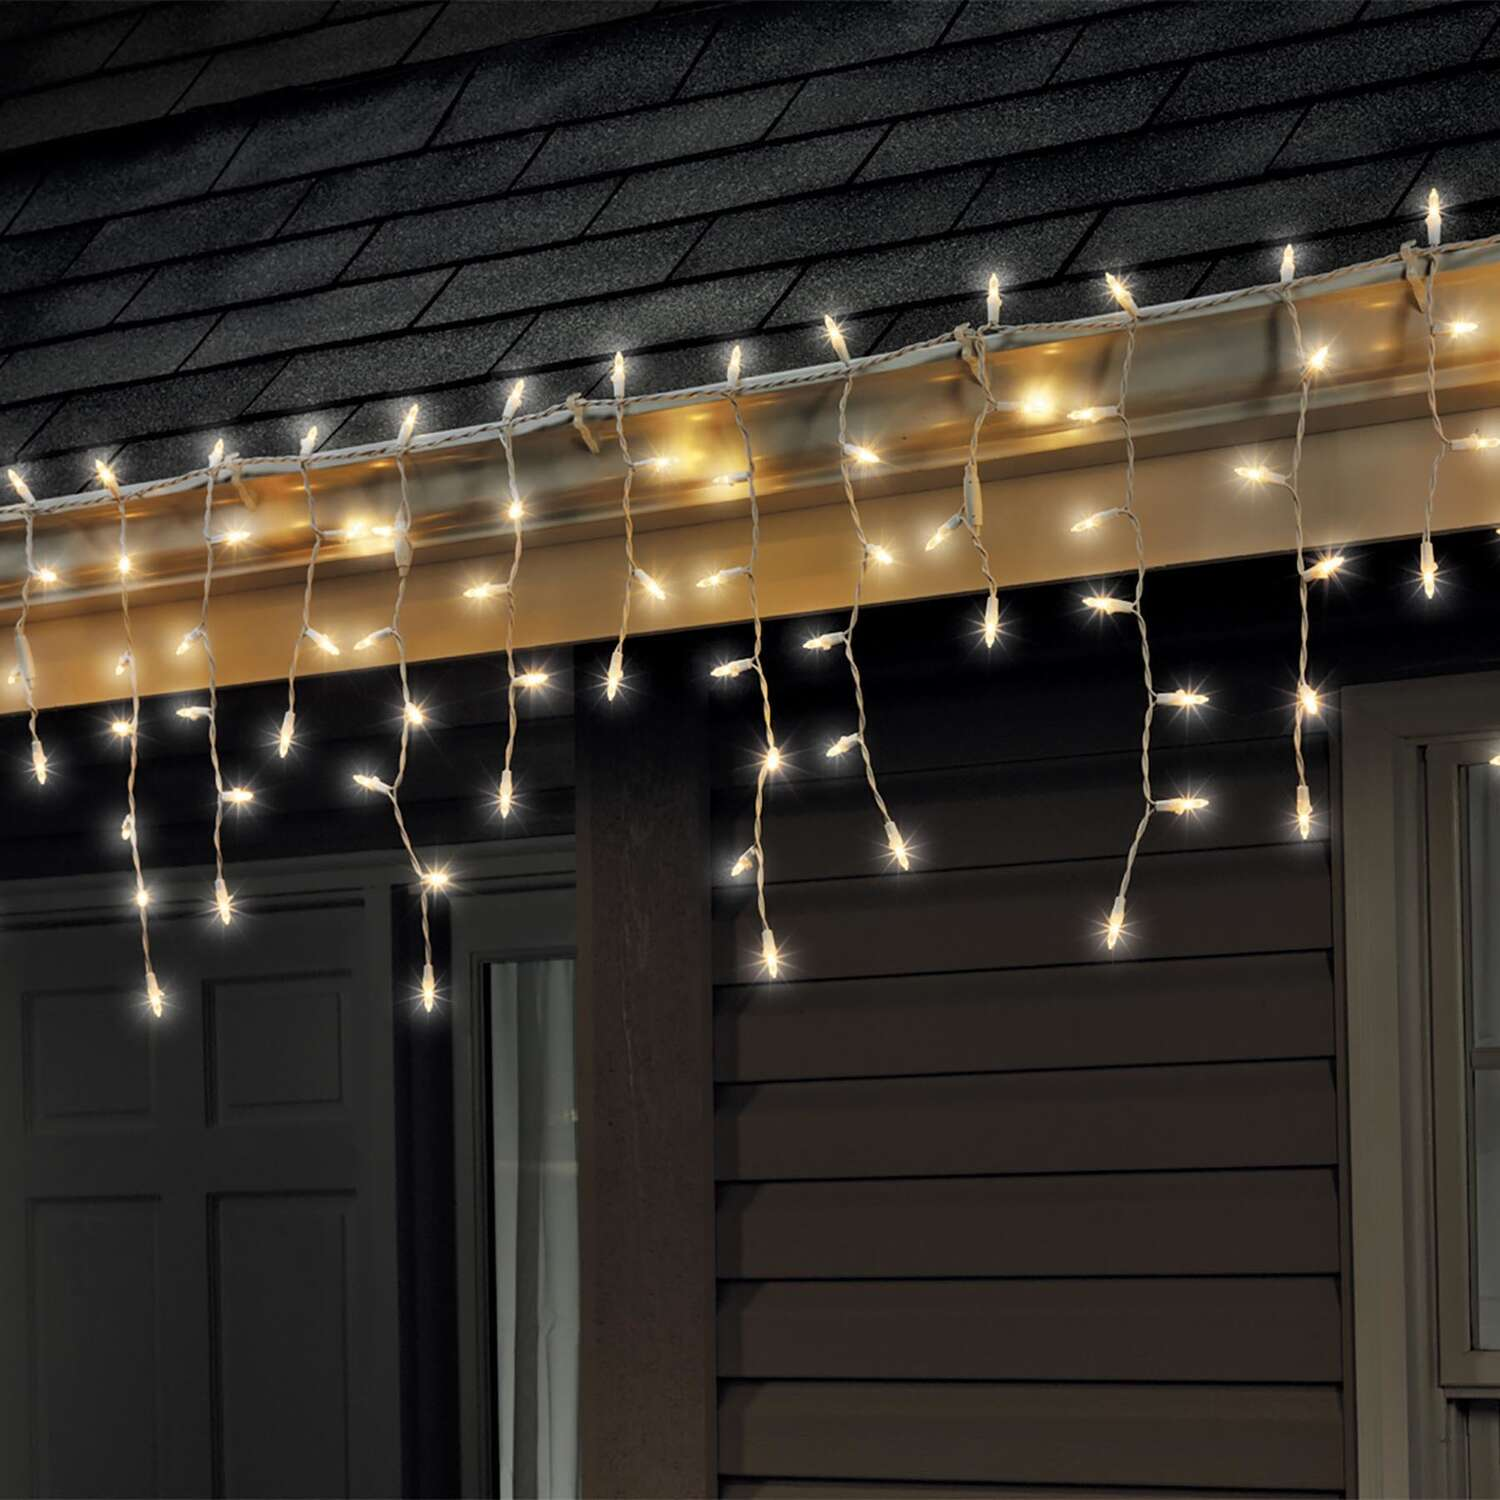 Celebrations  LED Mini  Warm White  100 count Light Set  6 ft.